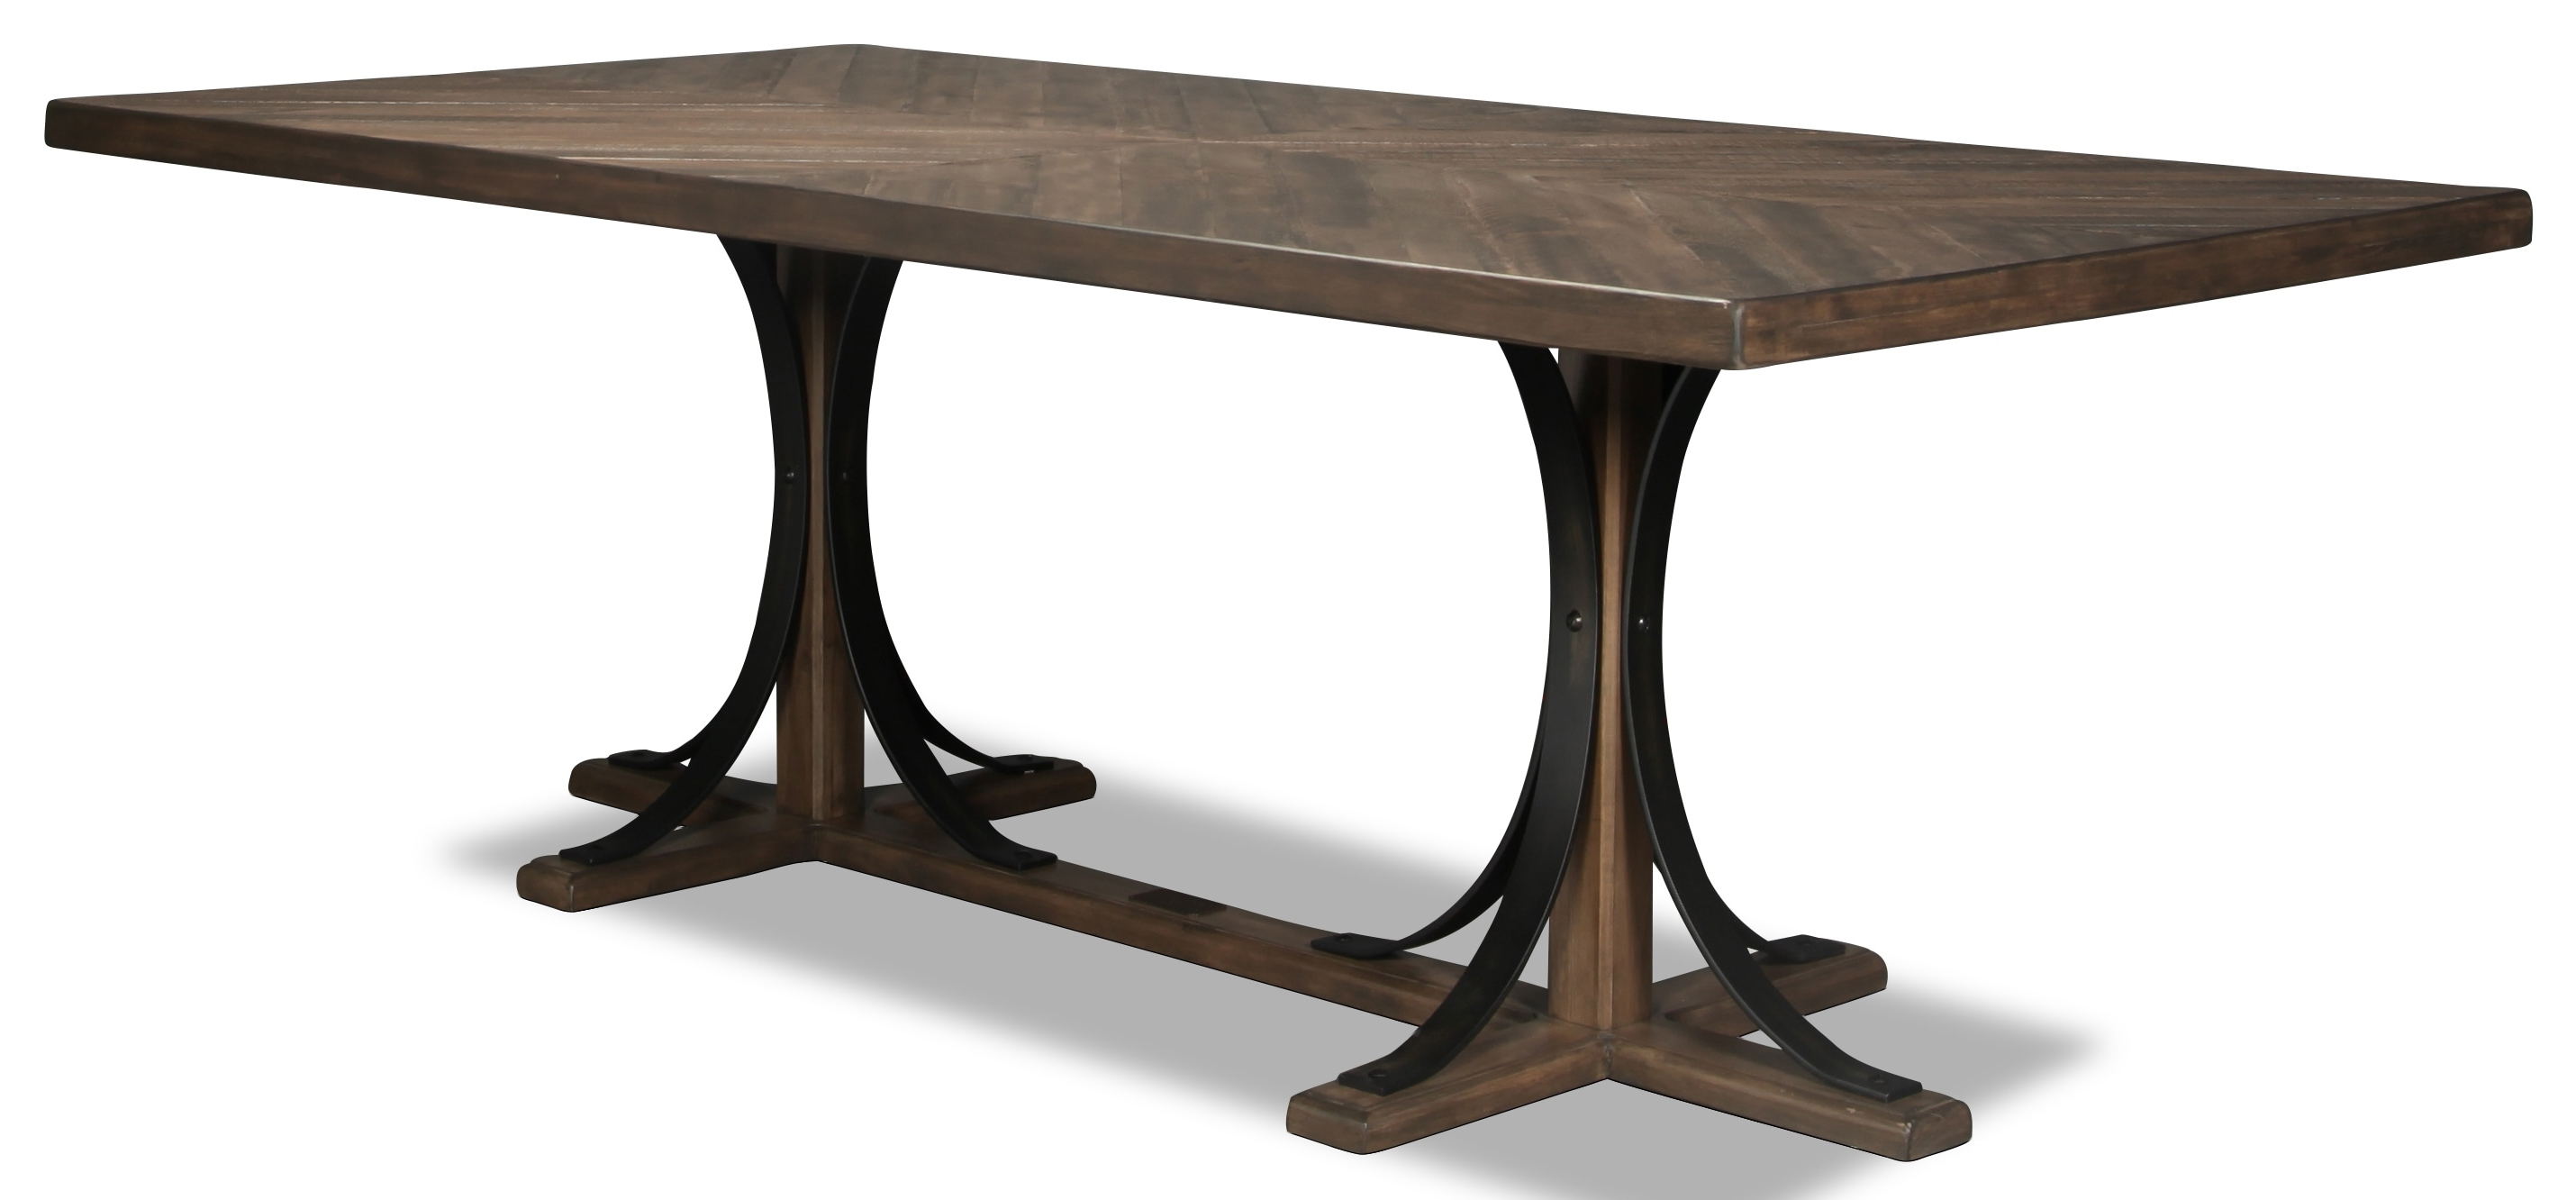 Famous Magnolia Home Iron Trestle Cocktail Tables With Magnolia Home Traditional Iron Trestle Table (View 3 of 20)